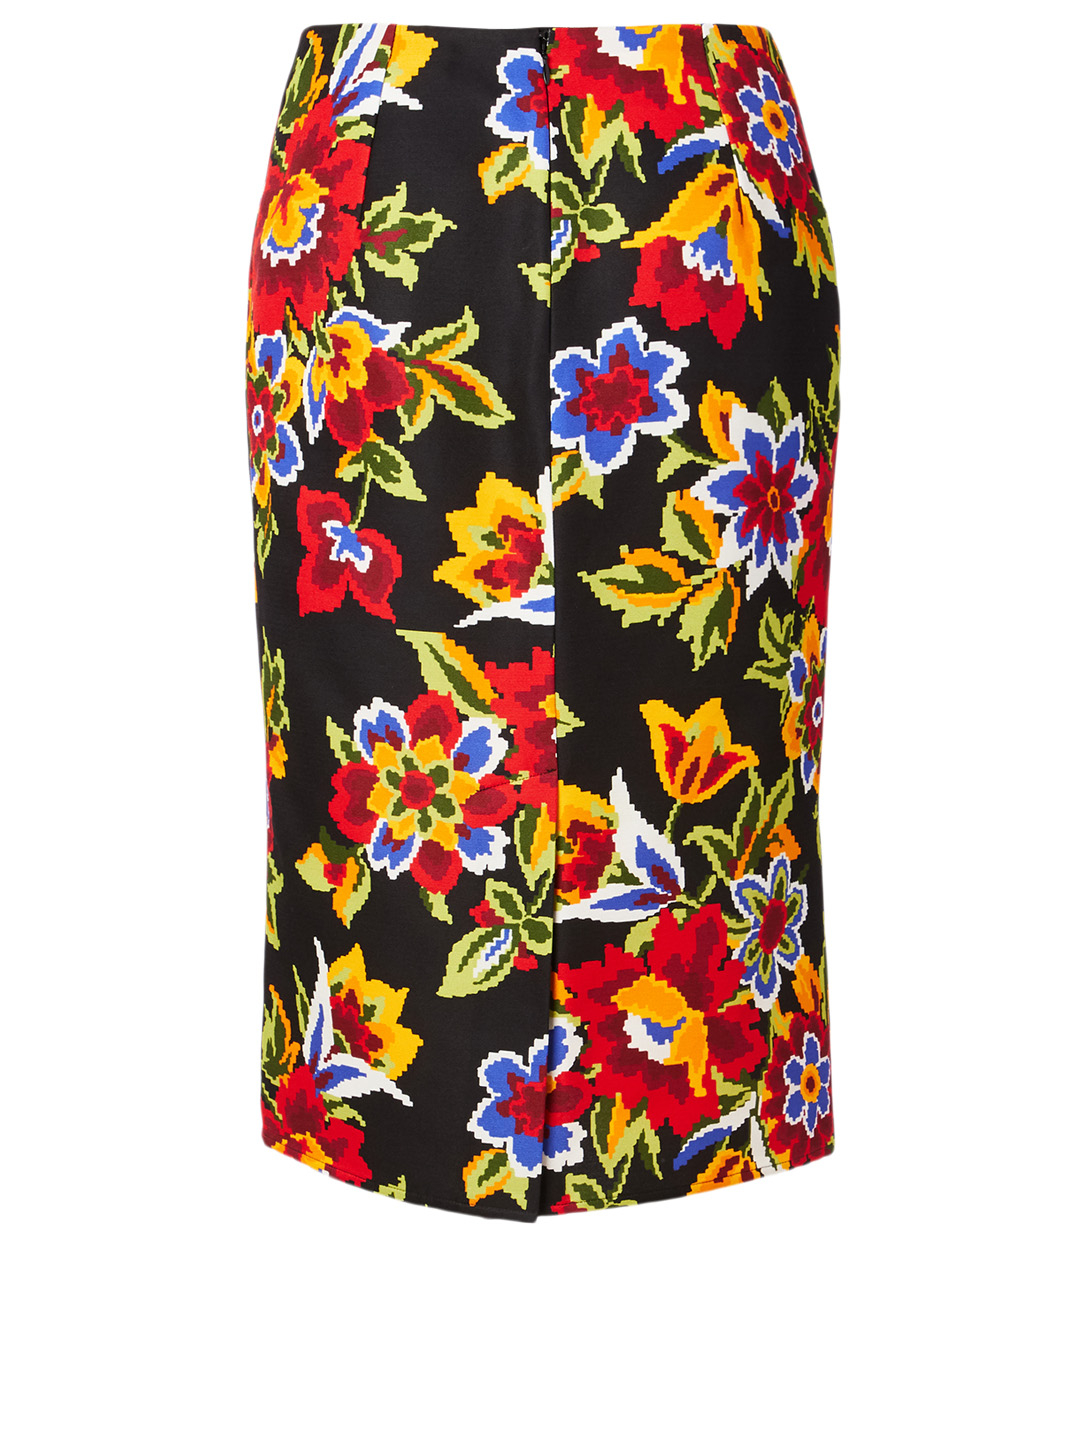 CAROLINA HERRERA Cotton And Silk Pencil Skirt In Floral Print Women's Black